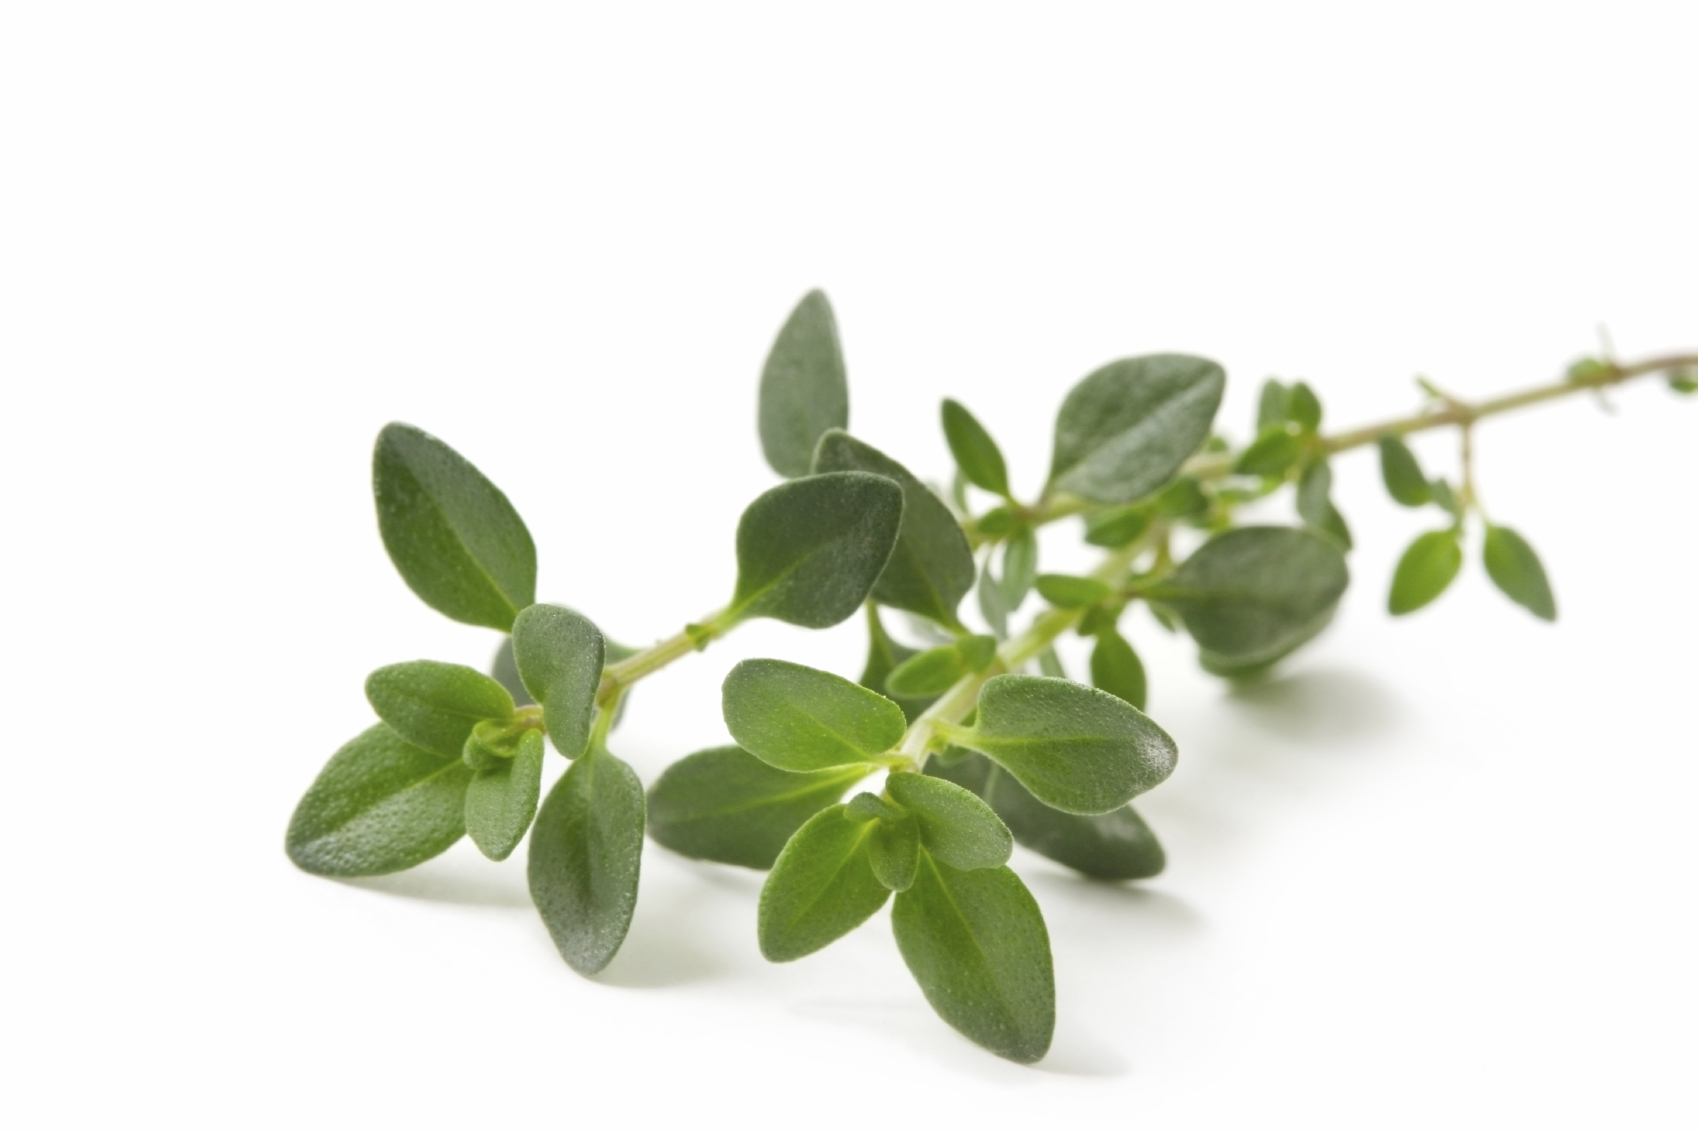 Add     Benefect , our AntiMicrobial, to Sanitize and Reduce Allergens. When CitruSolution is Combined with this Thyme-based disinfectant our customers have experienced a Reduction, if not a complete Cessation of Allergy Symptoms